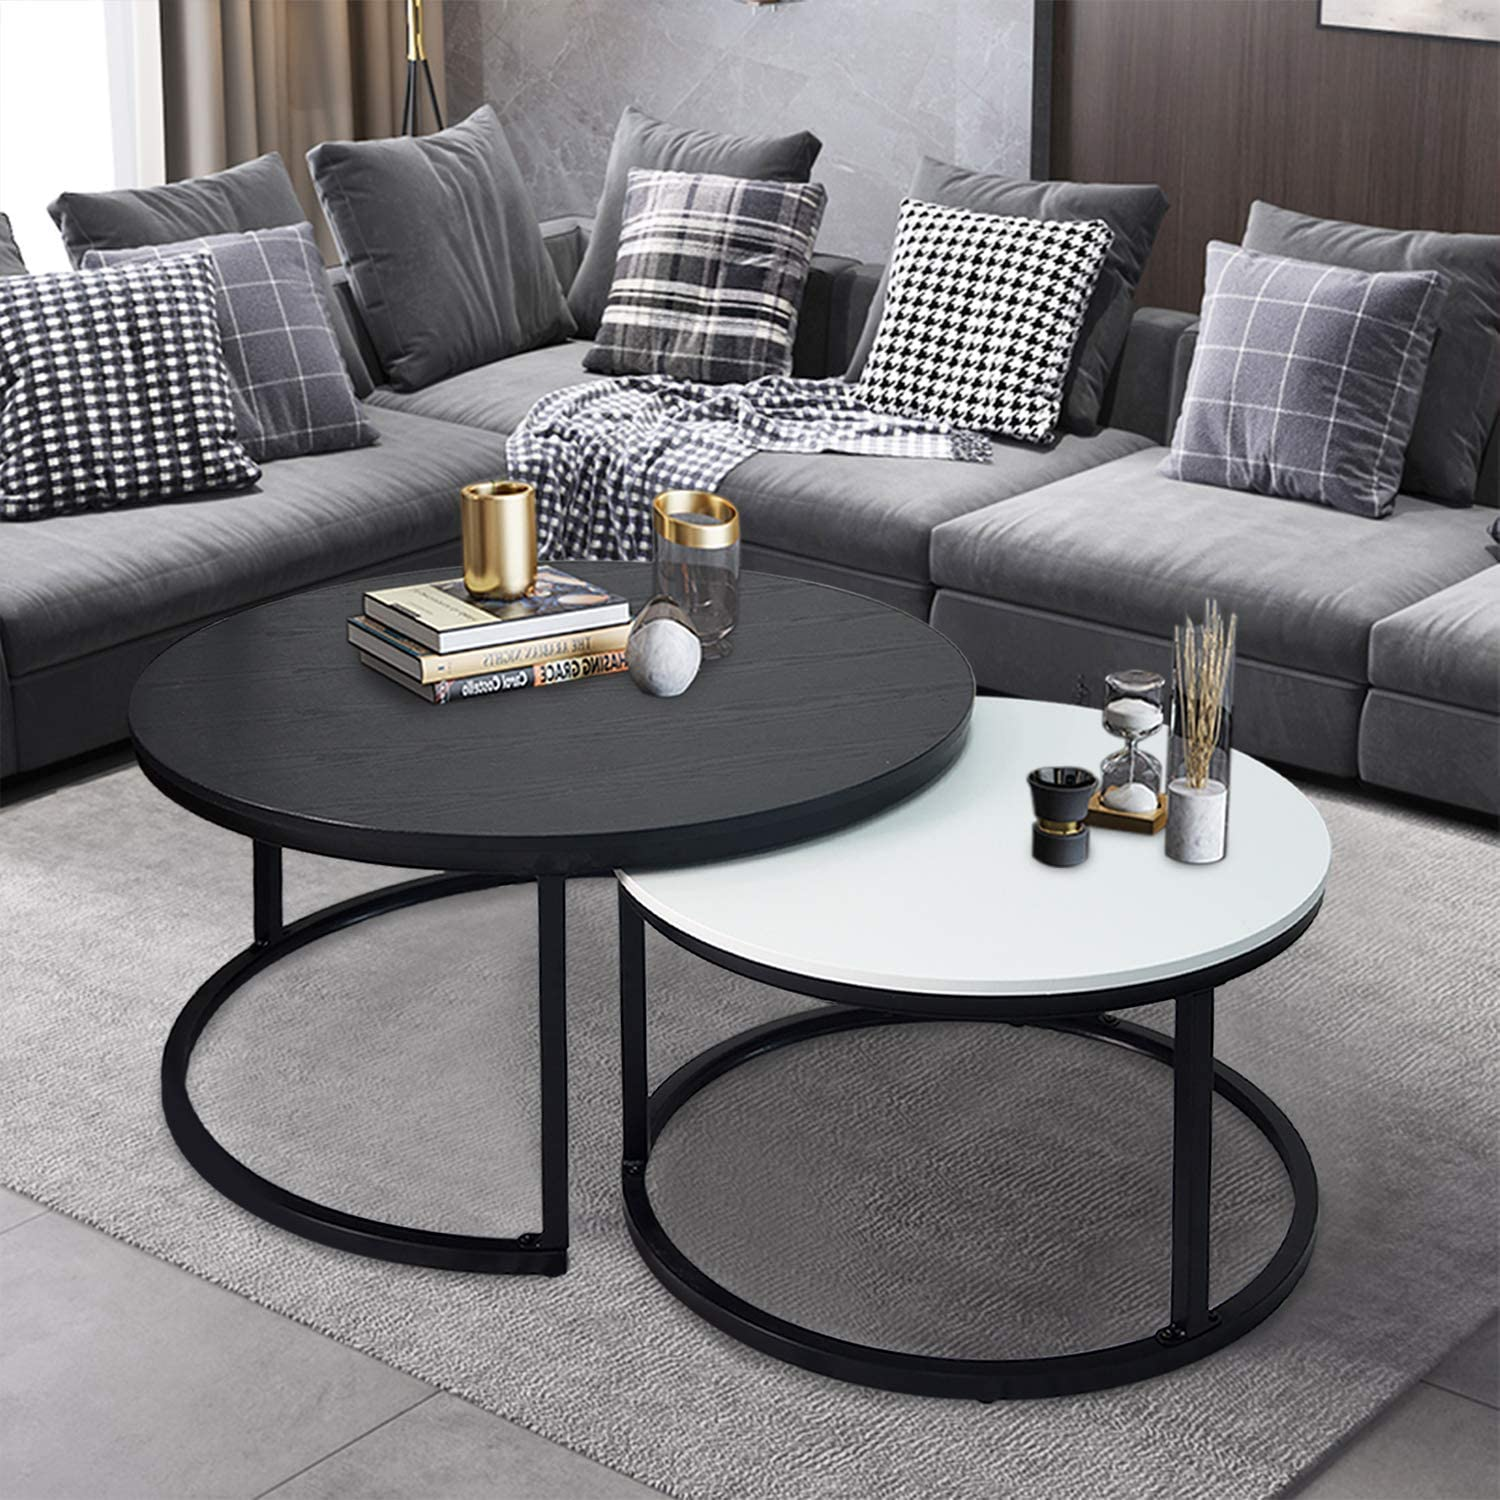 charaHOME Round Coffee Tables,2 Round Nesting Table Set Circle Coffee Table with Storage Open Shelf for Living Room Modern Minimalist Style Furniture Side End Table of Stable(Black & White)